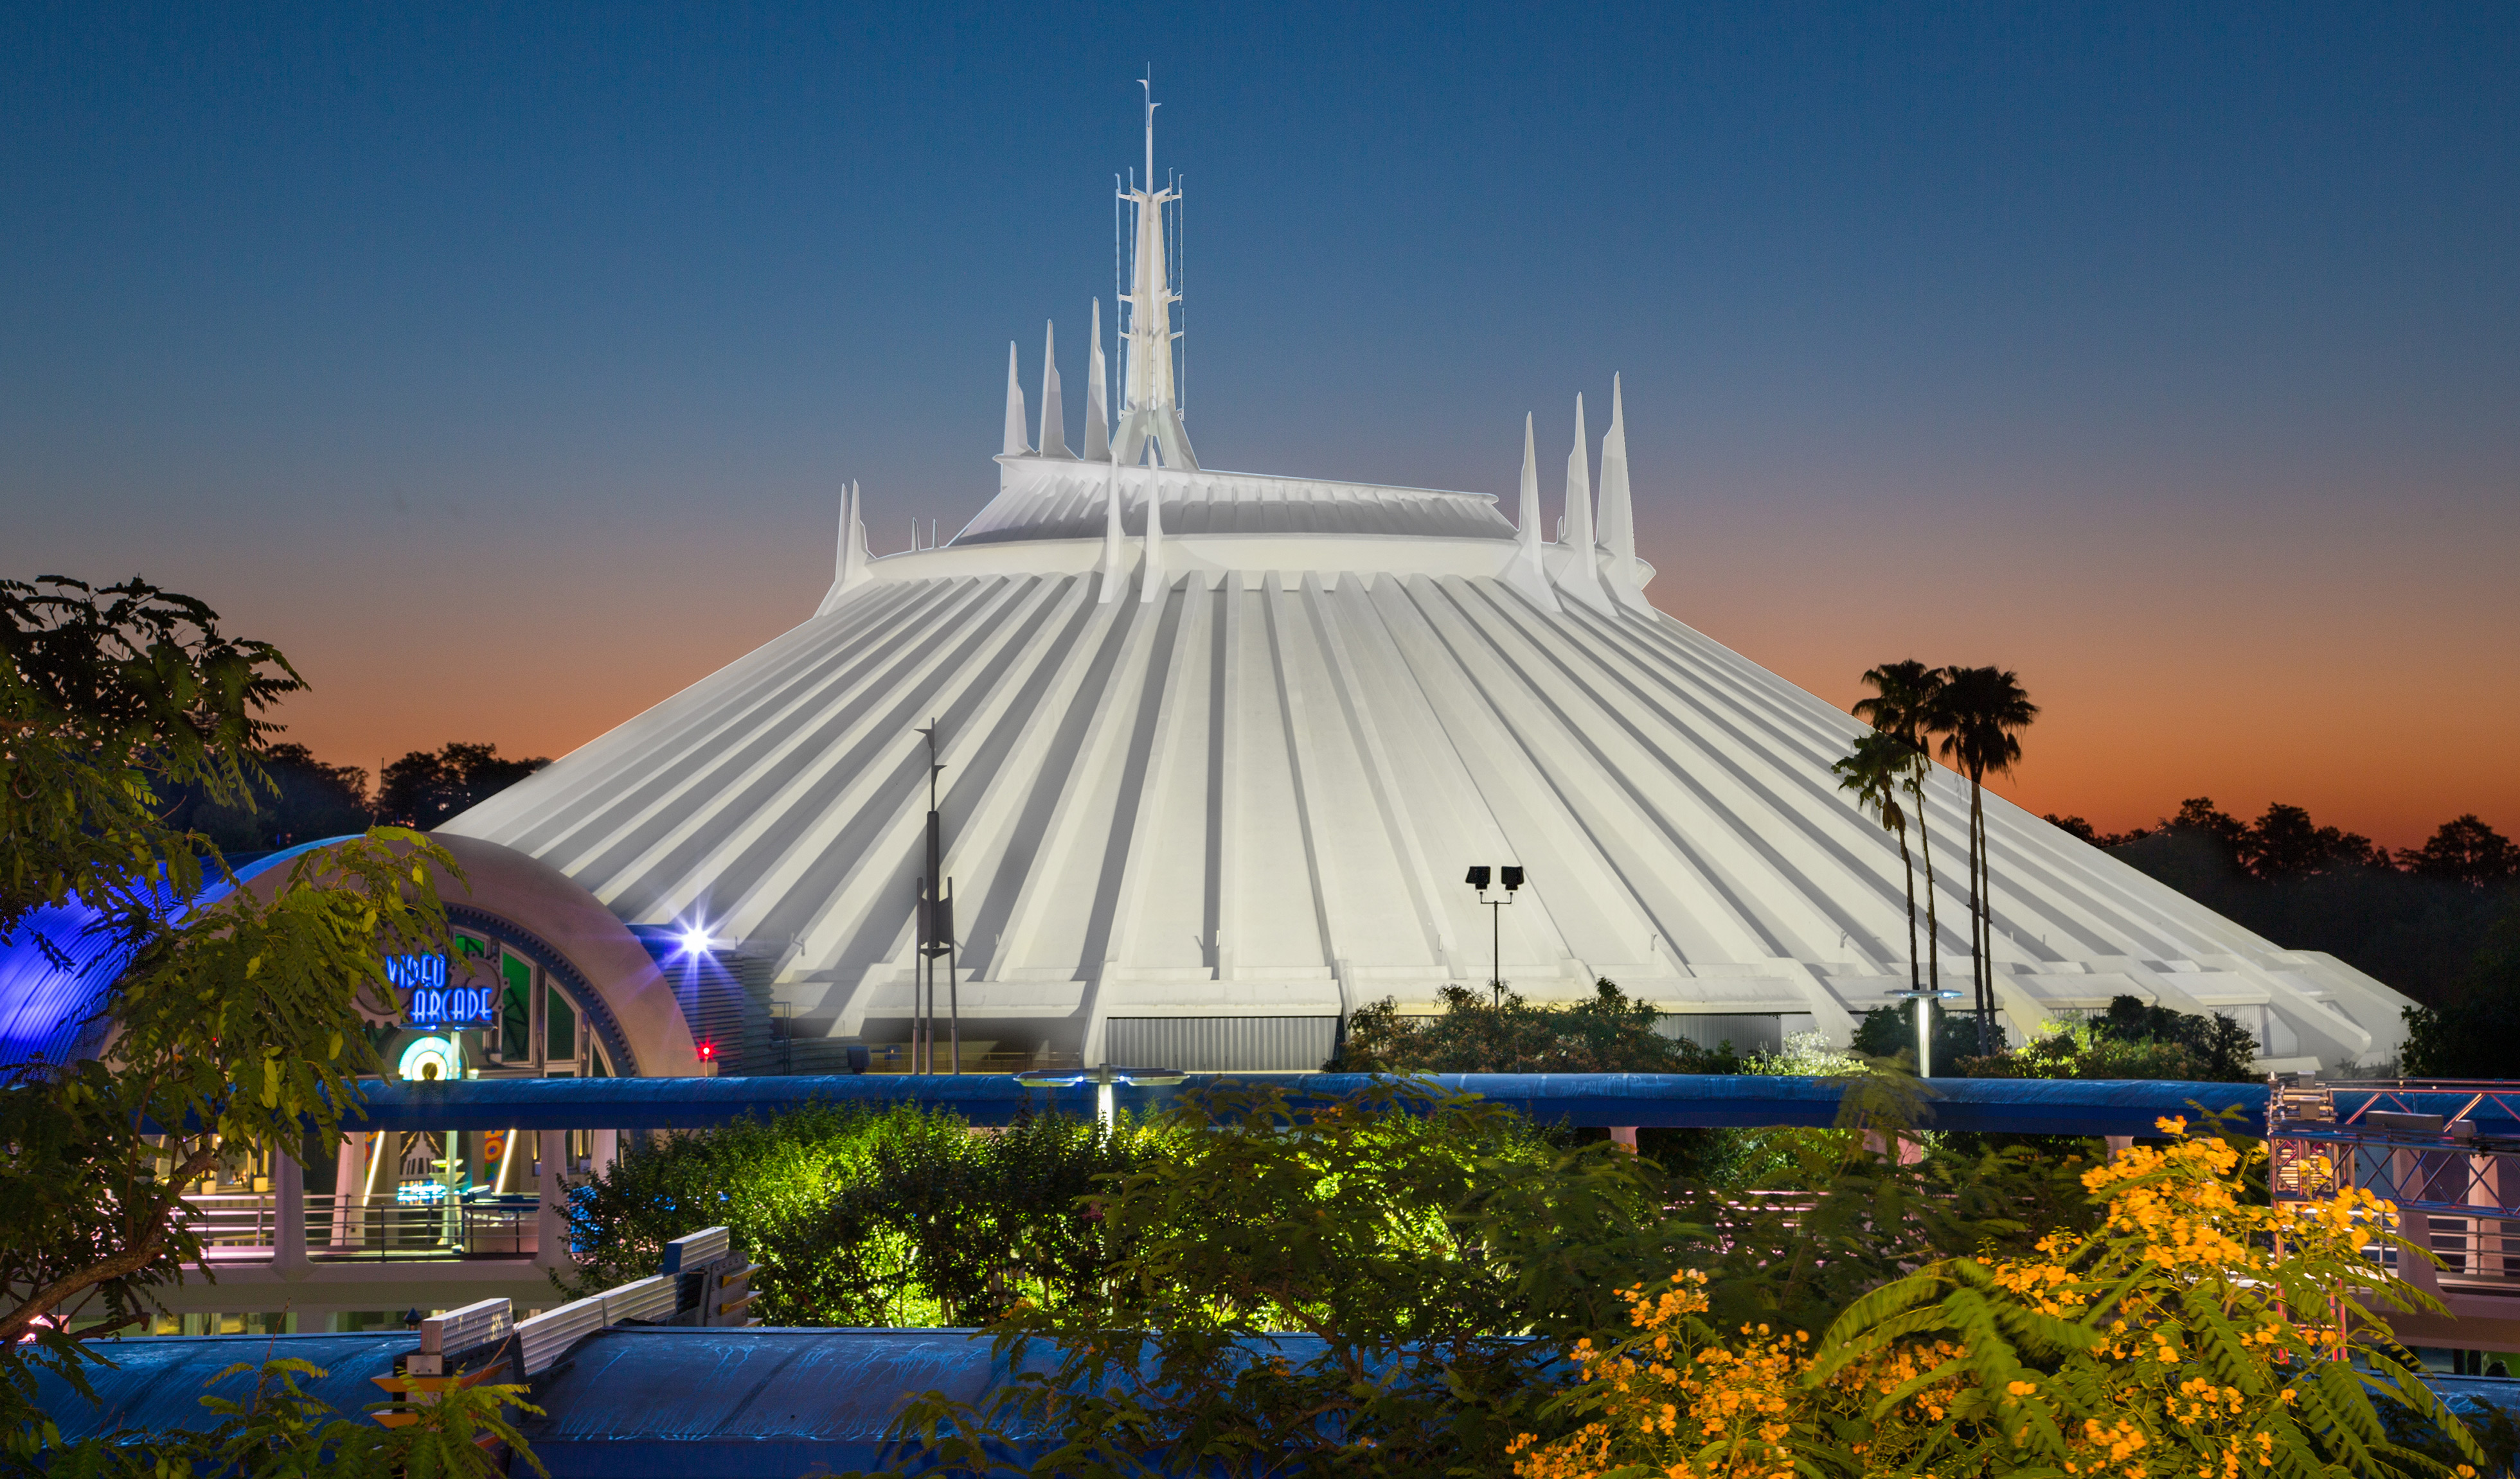 Spires on the roof of Space Mountain rising into the night sky in Tomorrowland at Magic Kingdom park